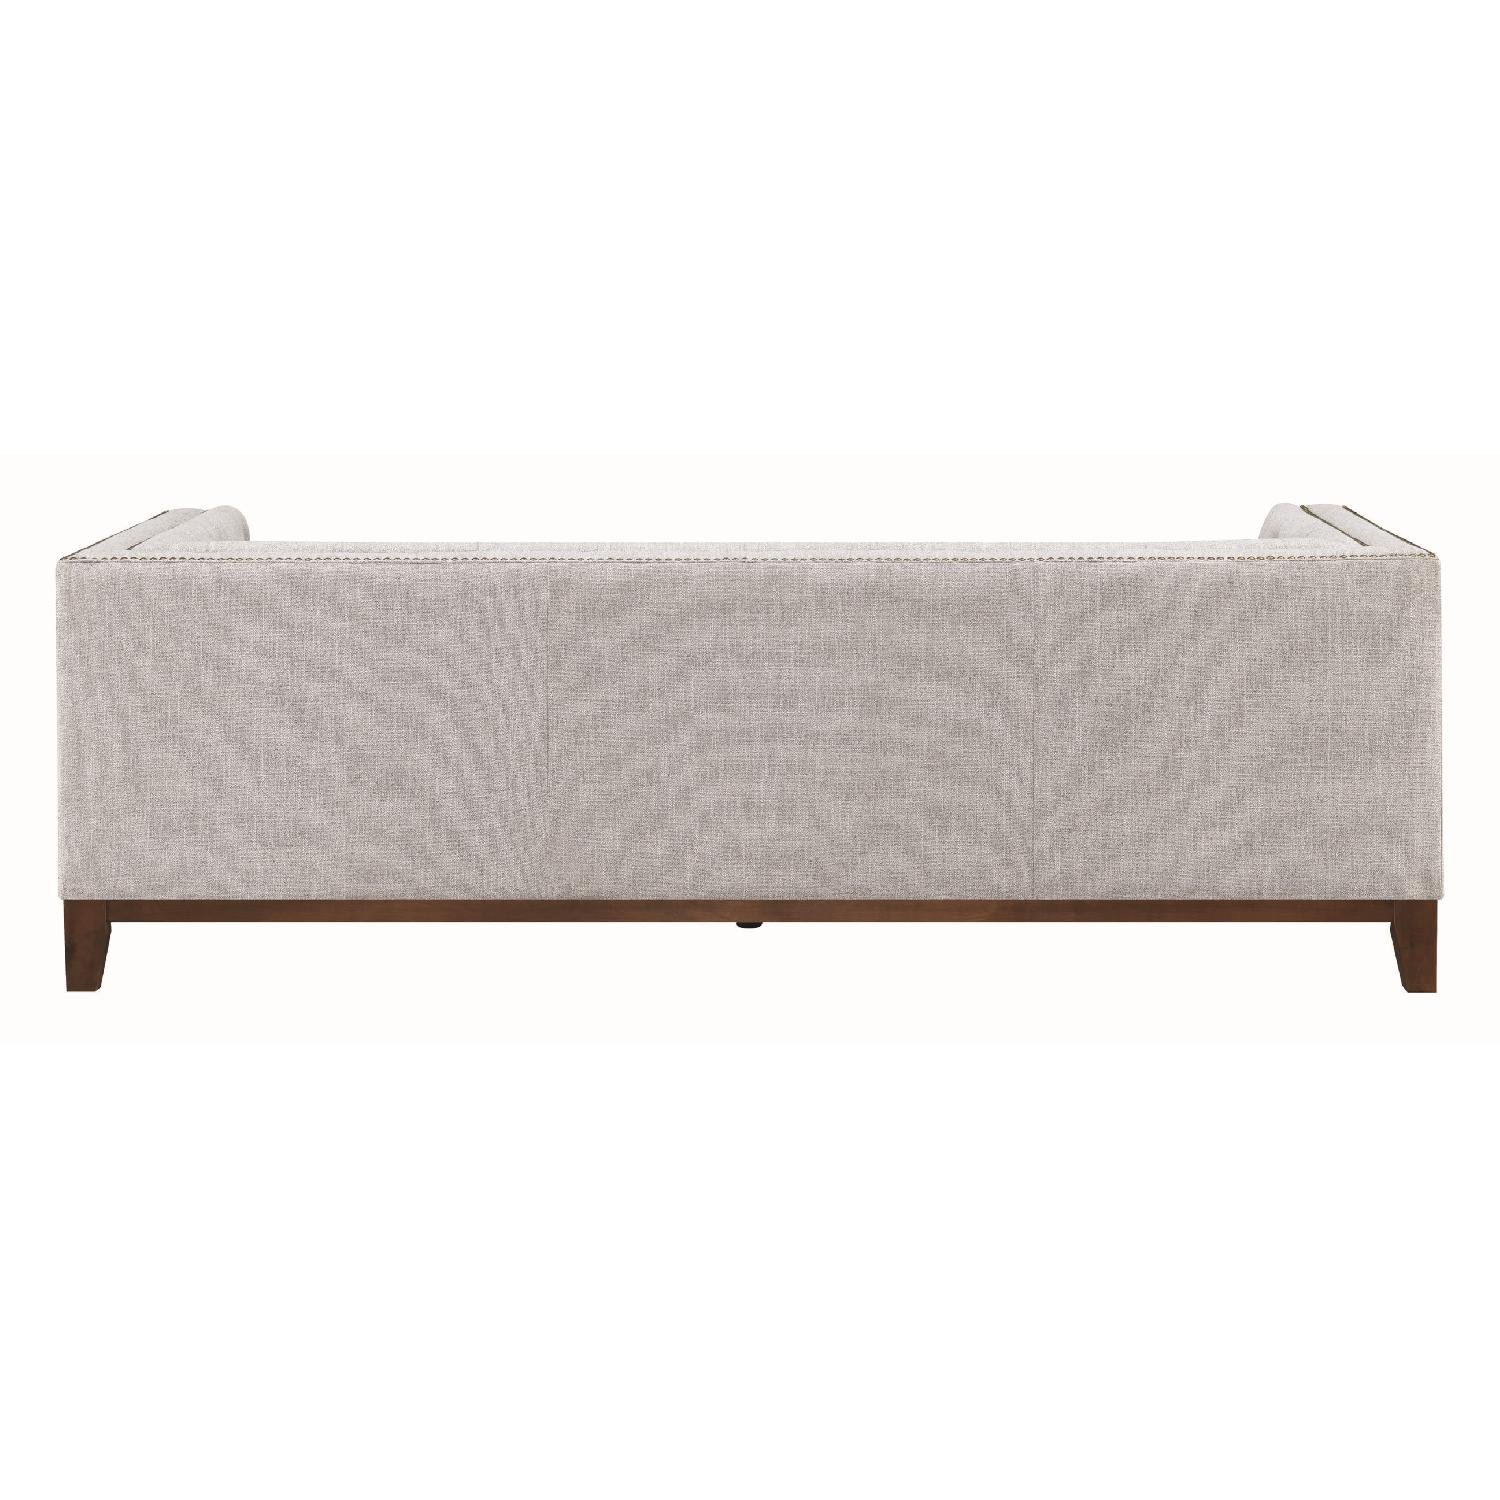 Modern Style Sofa w/ Tufted Buttons & Nailhead Accent - image-4